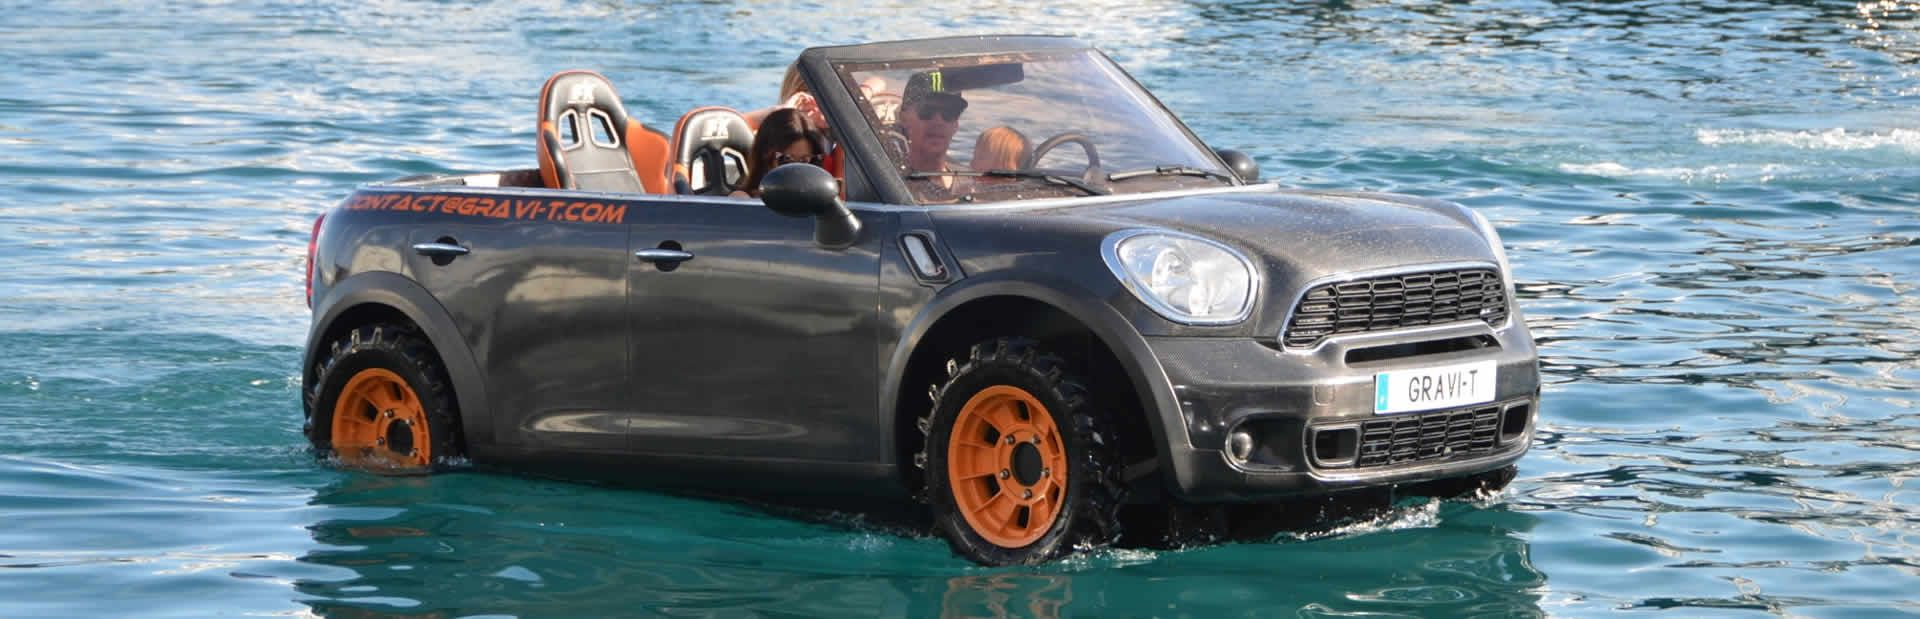 Amphibous Car on the water